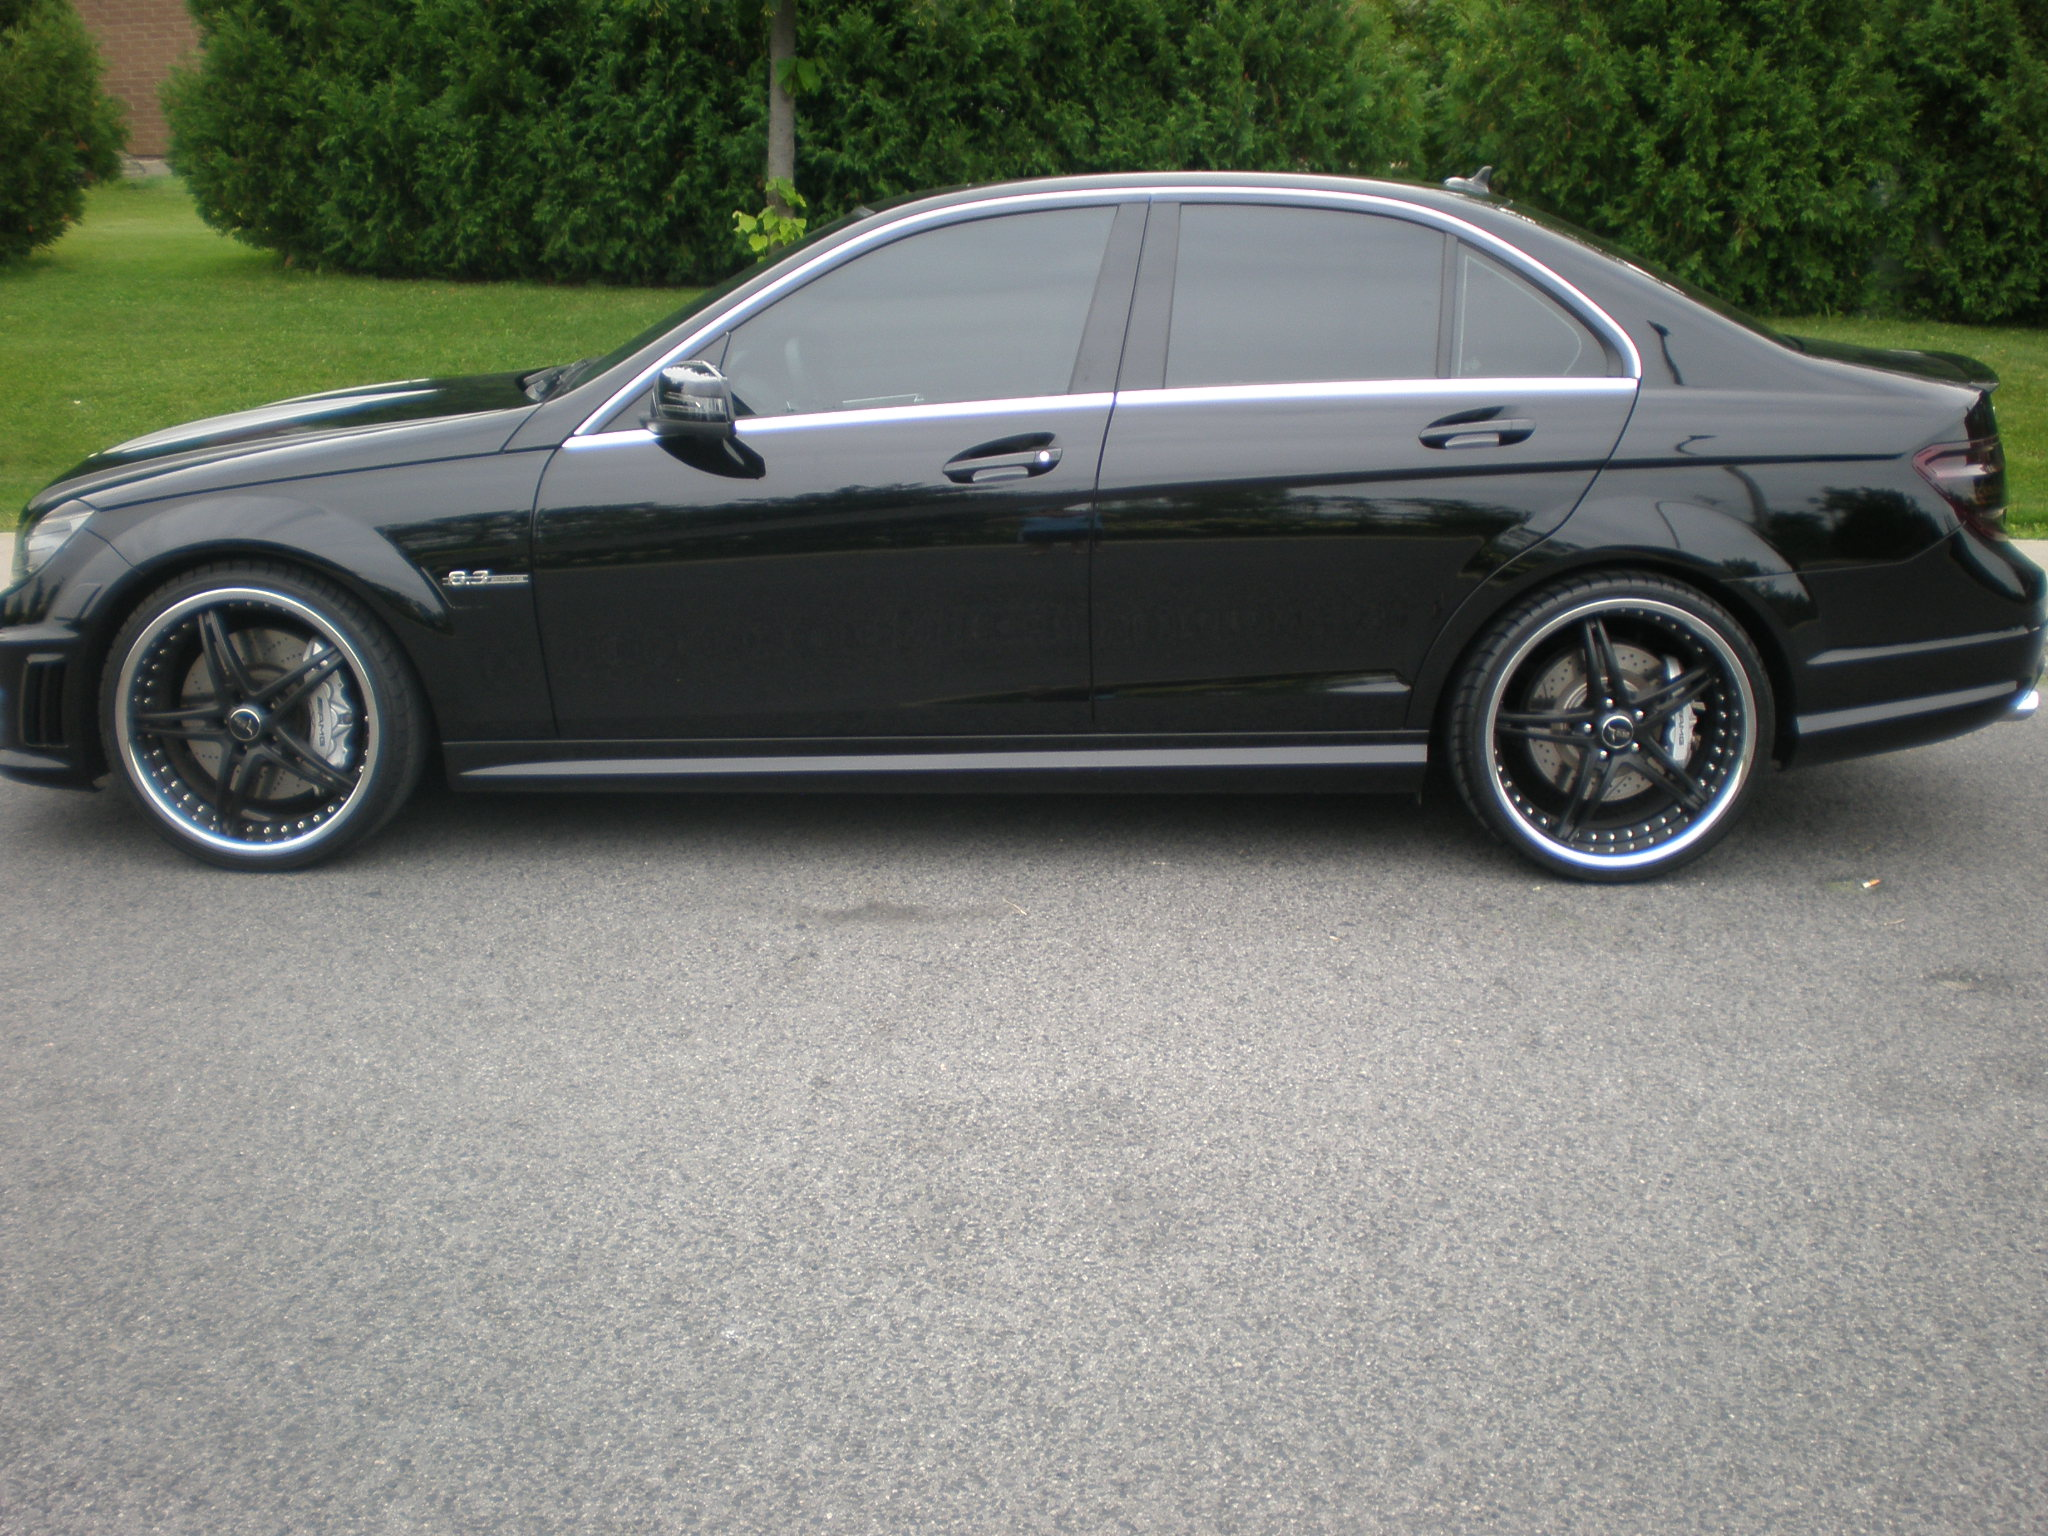 Stock 2010 mercedes benz c63 amg 1 4 mile drag racing for Mercedes benz c63 amg 2010